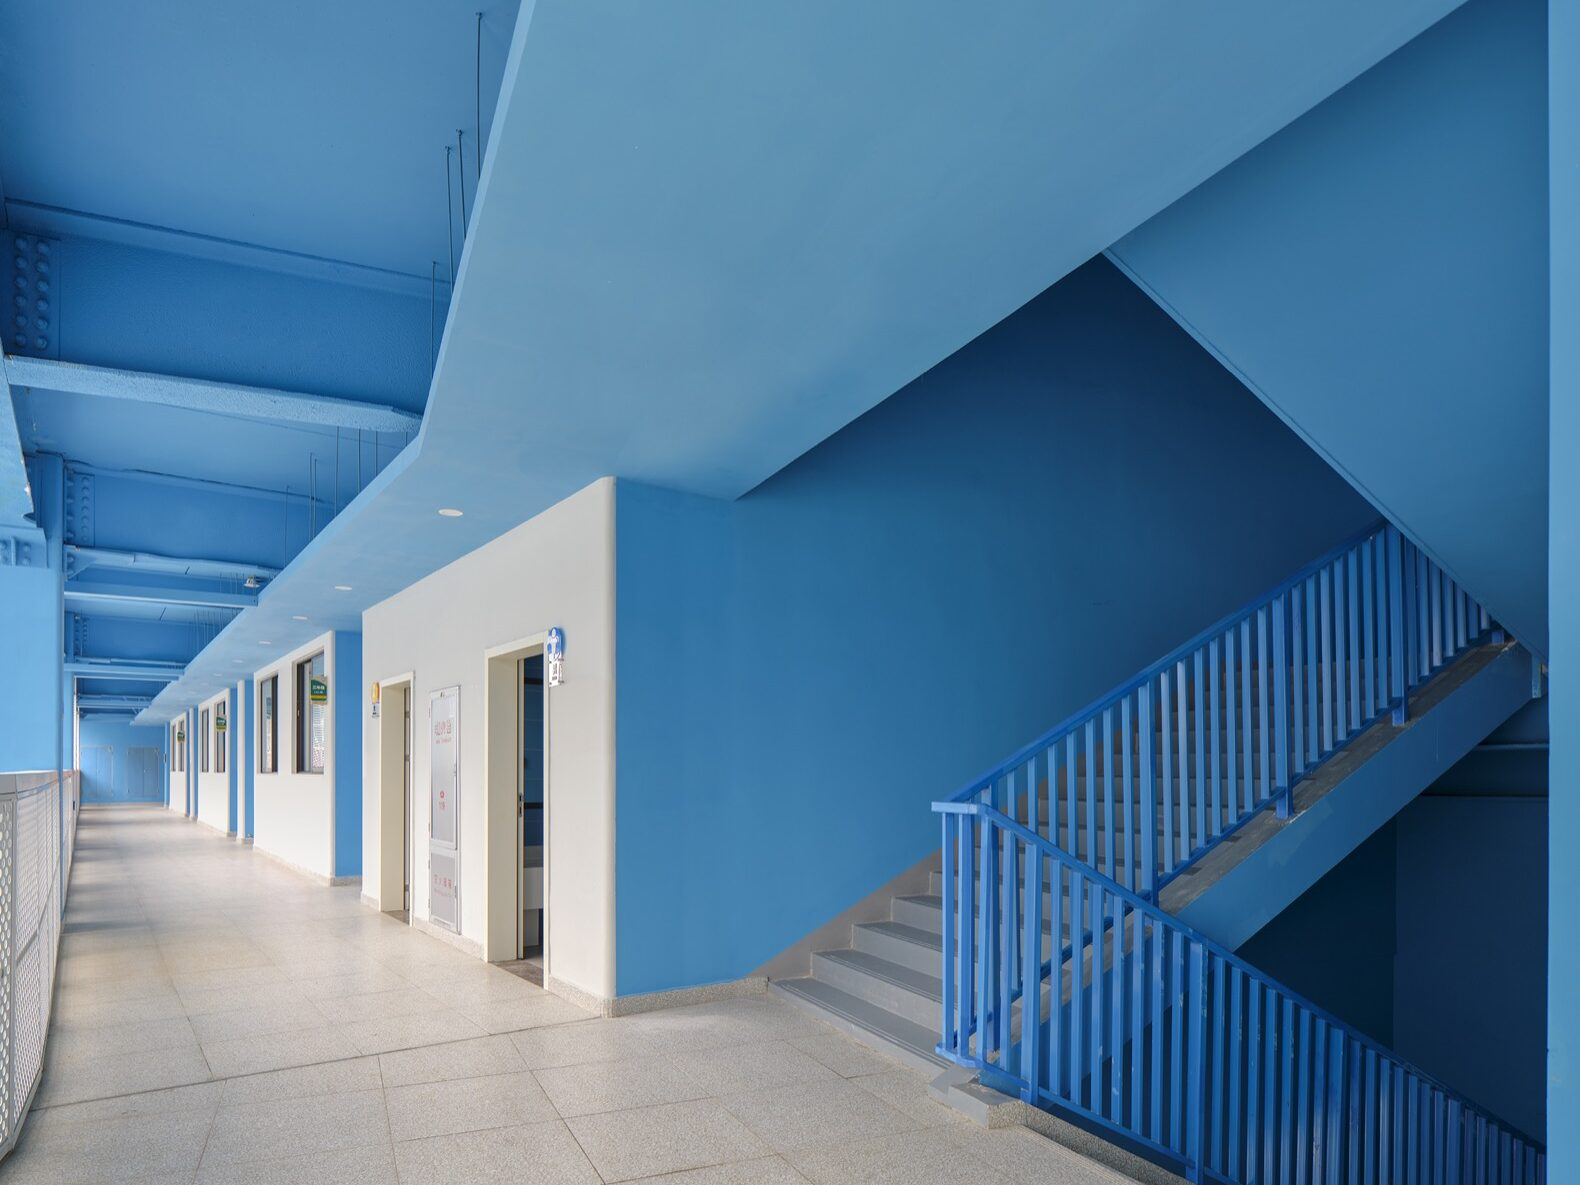 interior hallway of a school with blue walls and ceilings